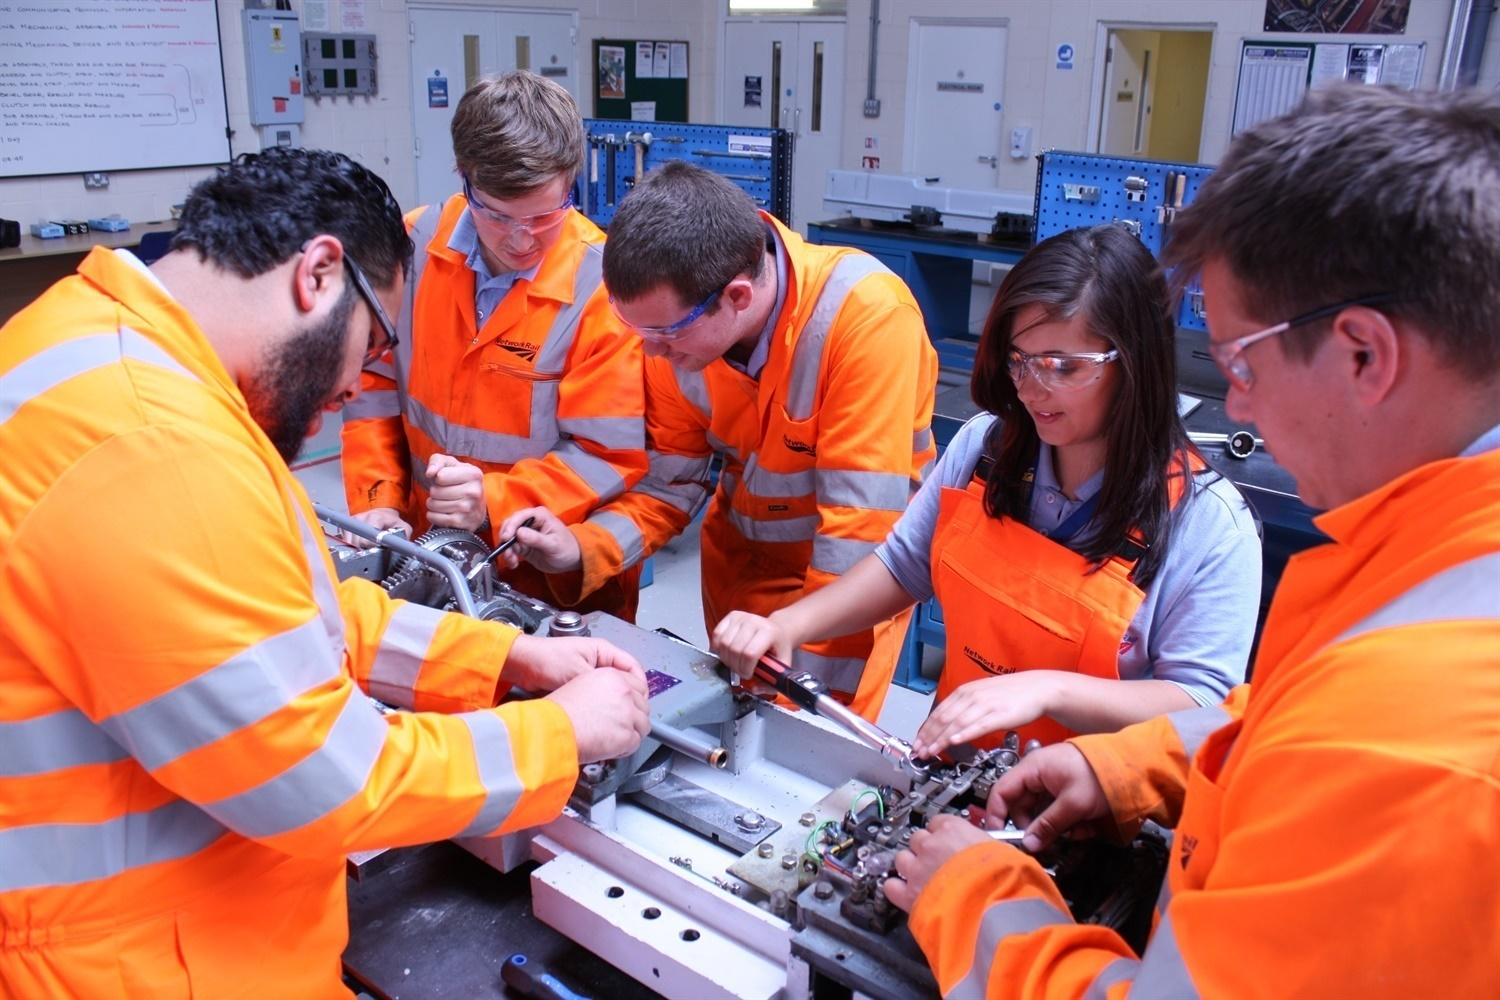 London Midland adopts new apprenticeship standard